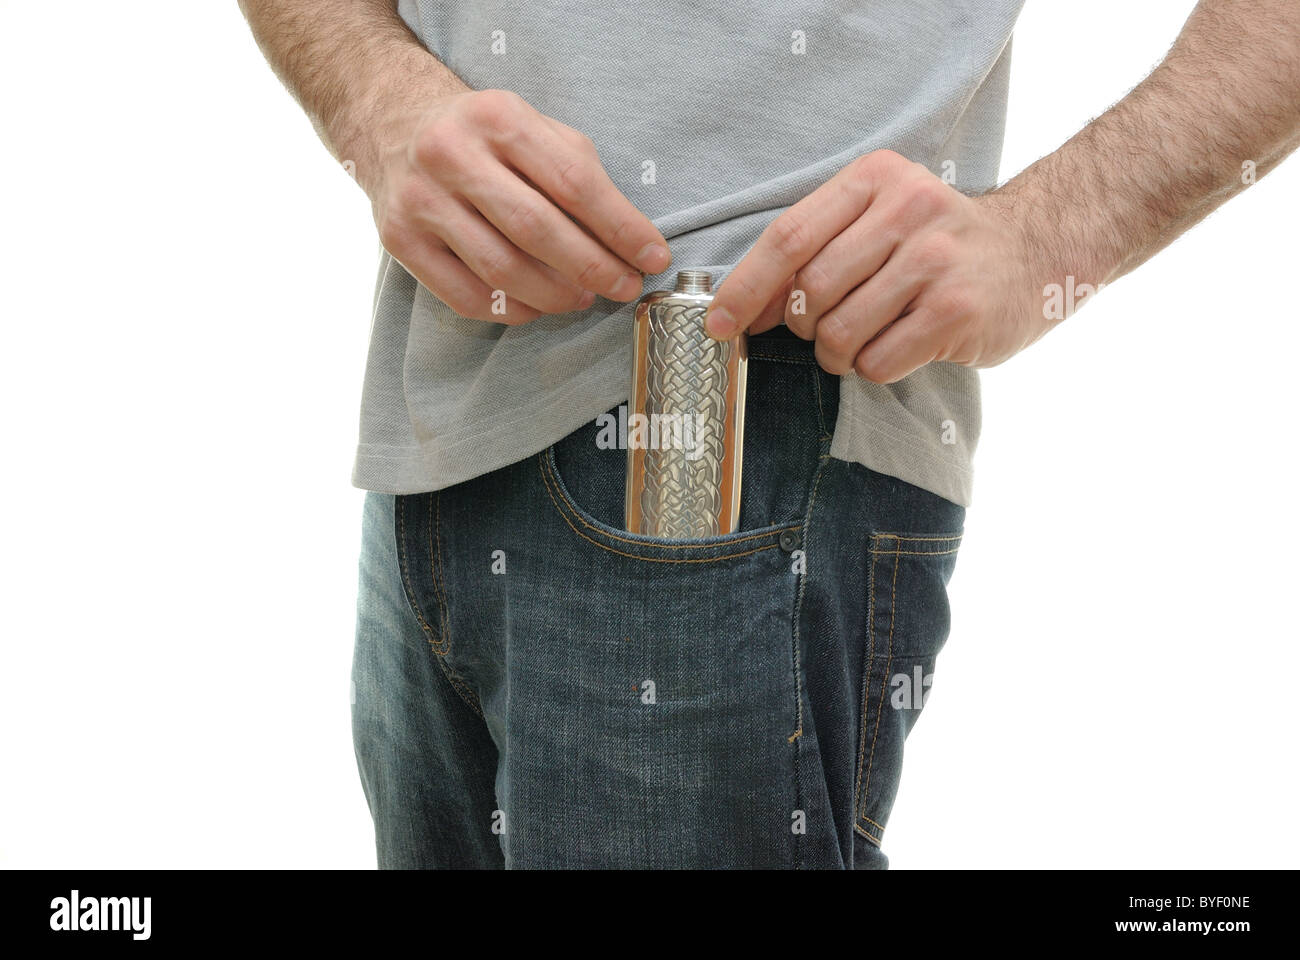 A guy pulling and uncapping a flask from his pocket - Stock Image